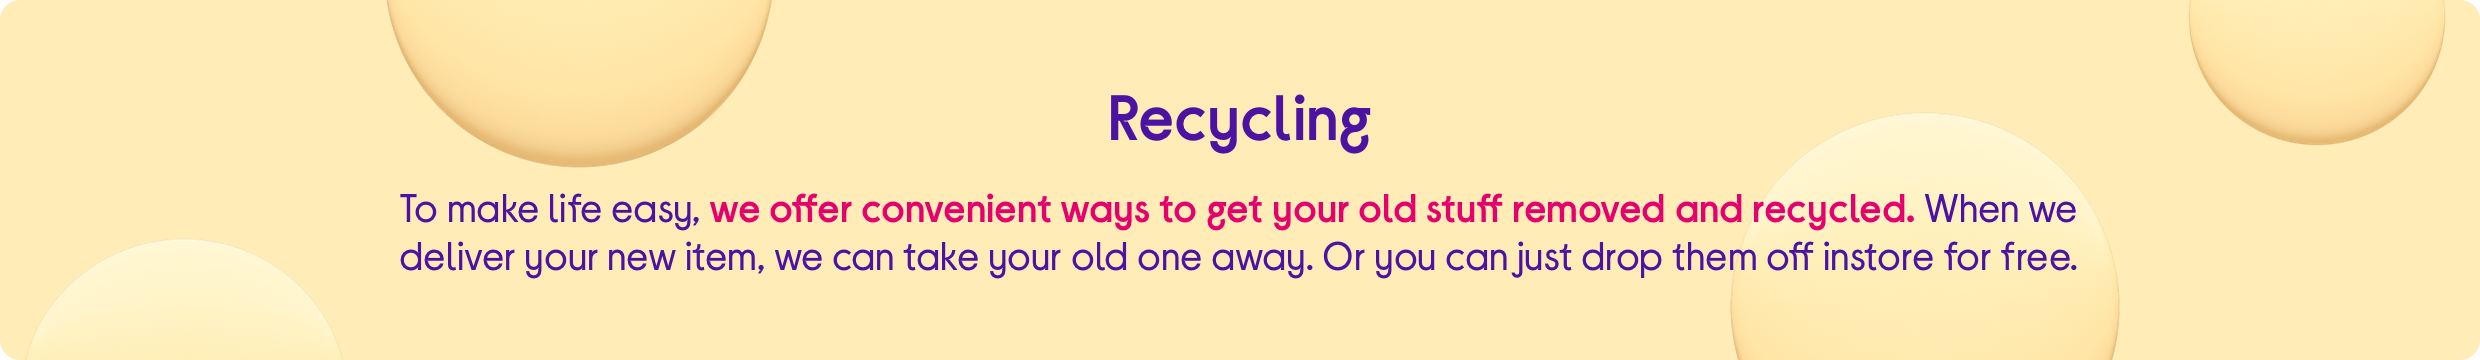 To make life easy, we offer convenient ways to get your old stuff removed and recycled. When we deliver your new item, we can take your old one away. Or you can just drop them off instore for free.